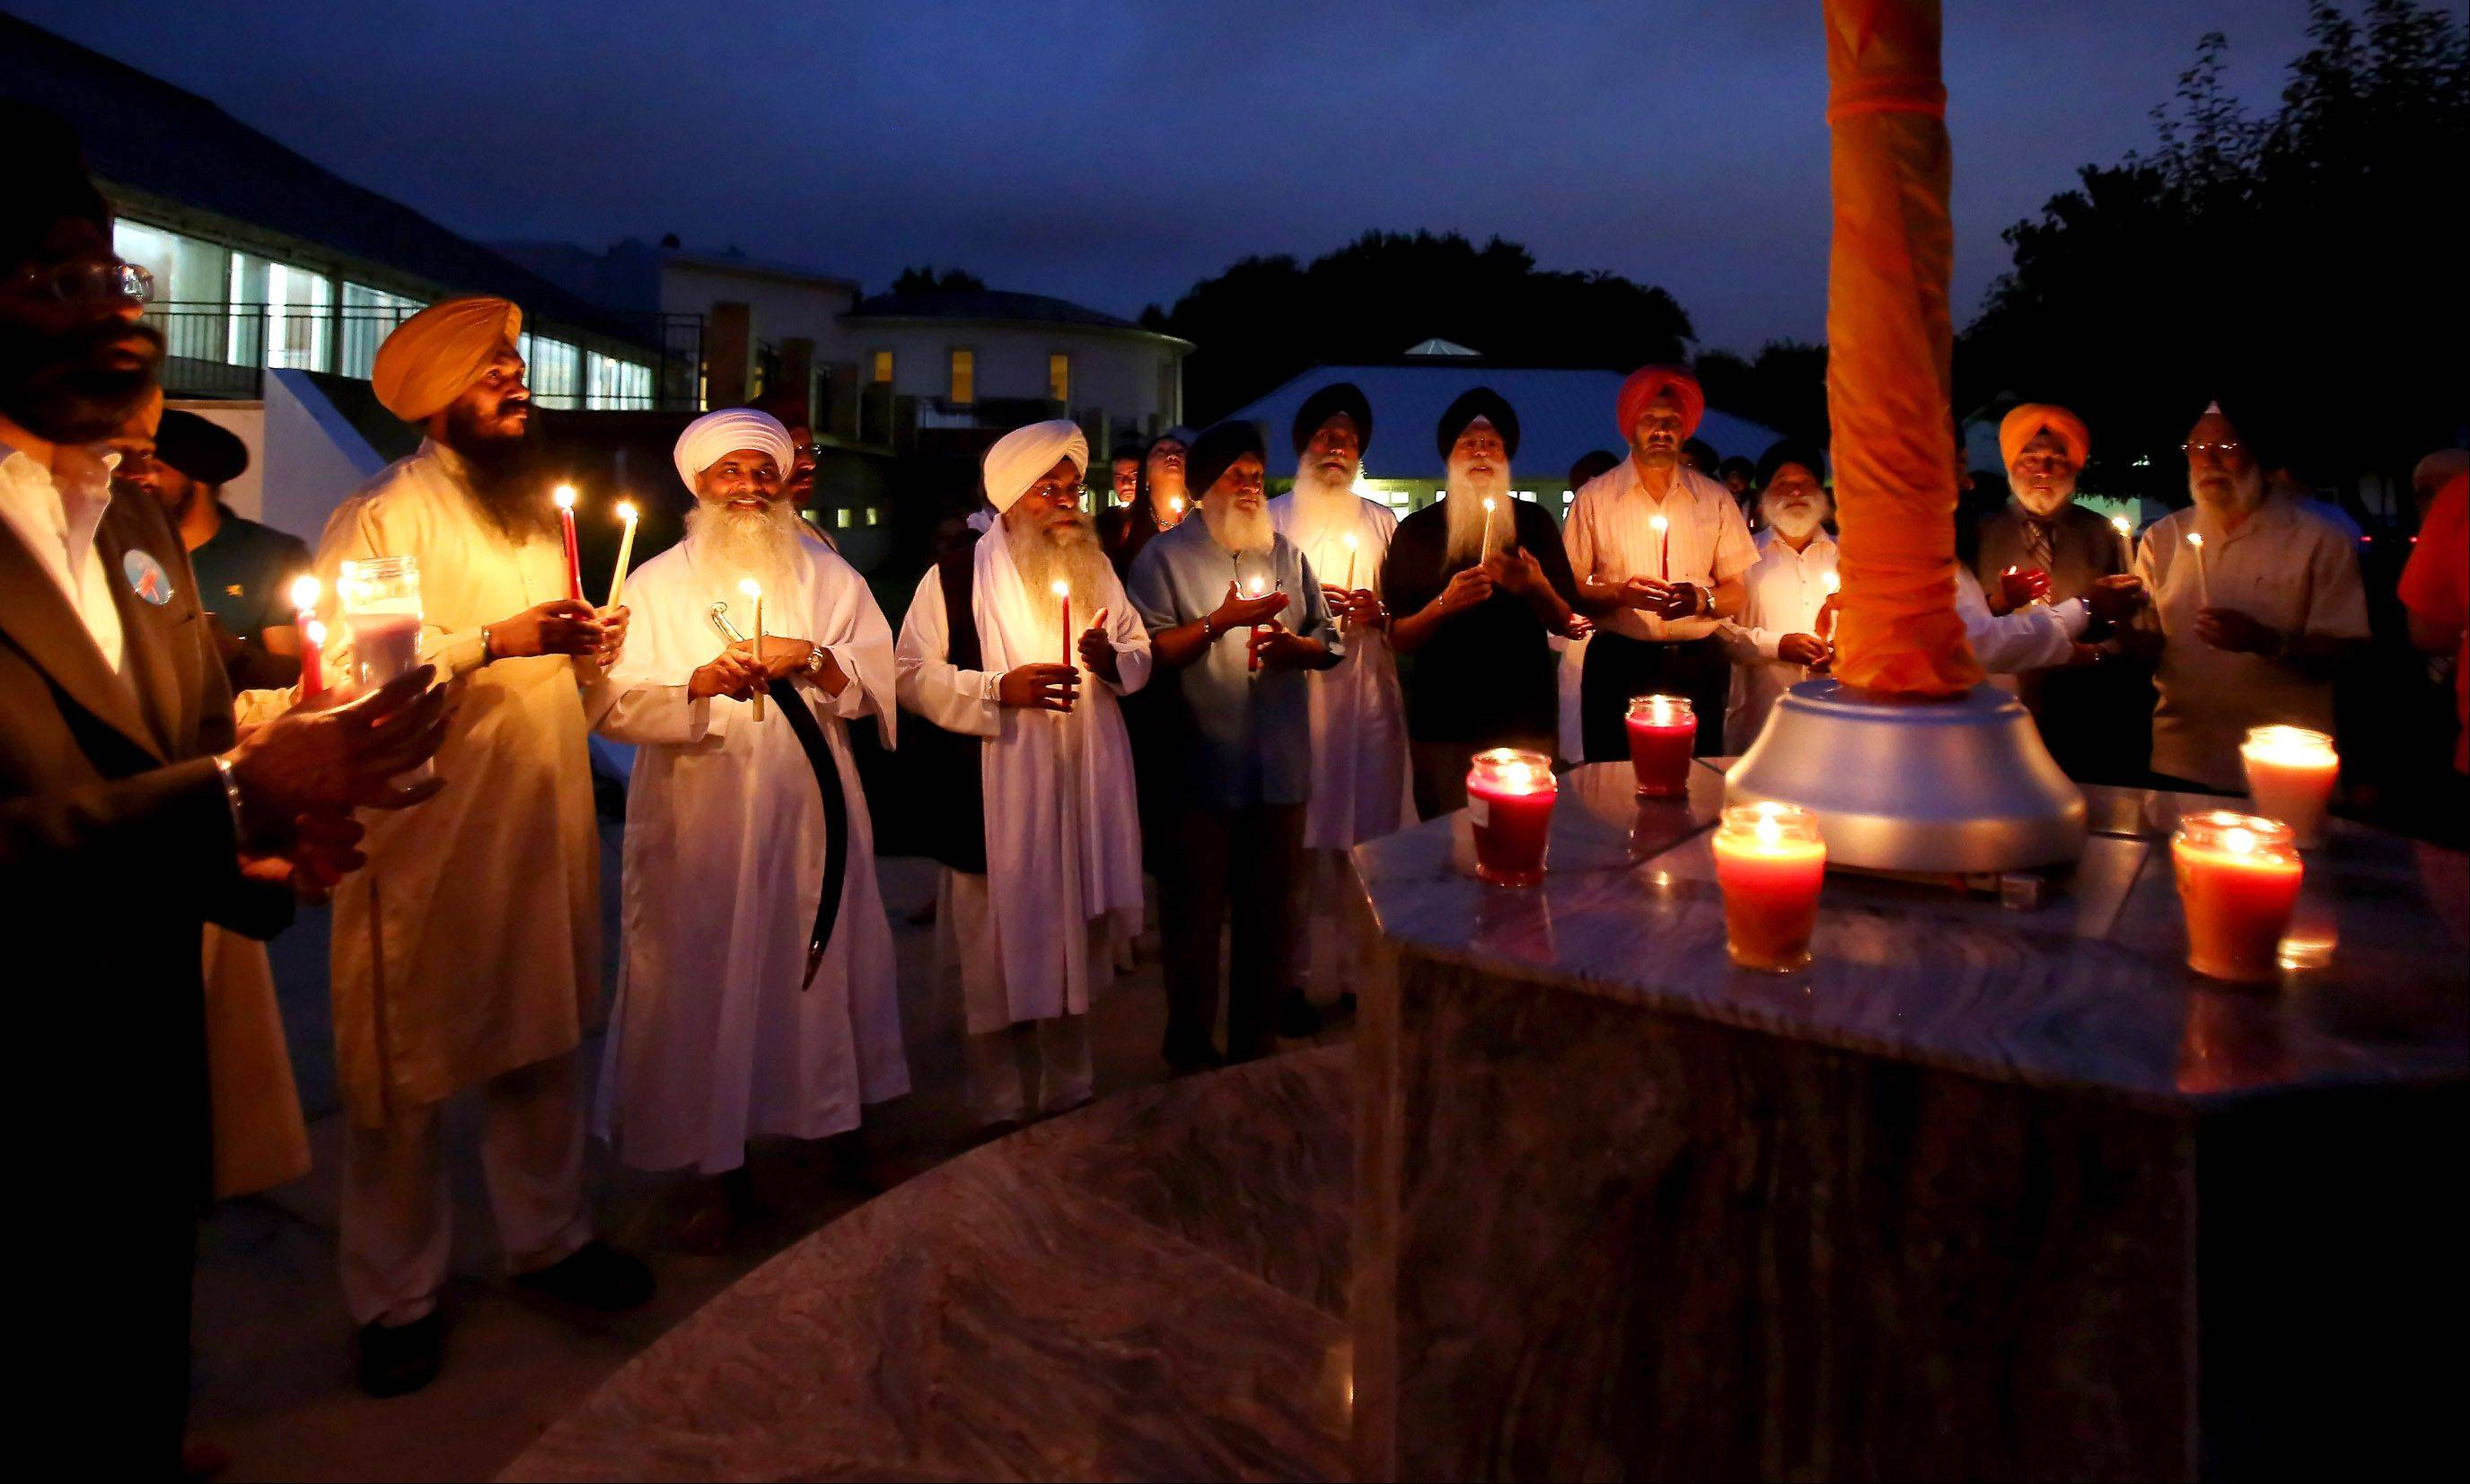 Members of the Gurudwara of Palatine hold a vigil in August to honor victims of the shooting at a Sikh temple in Milwaukee one year earlier.